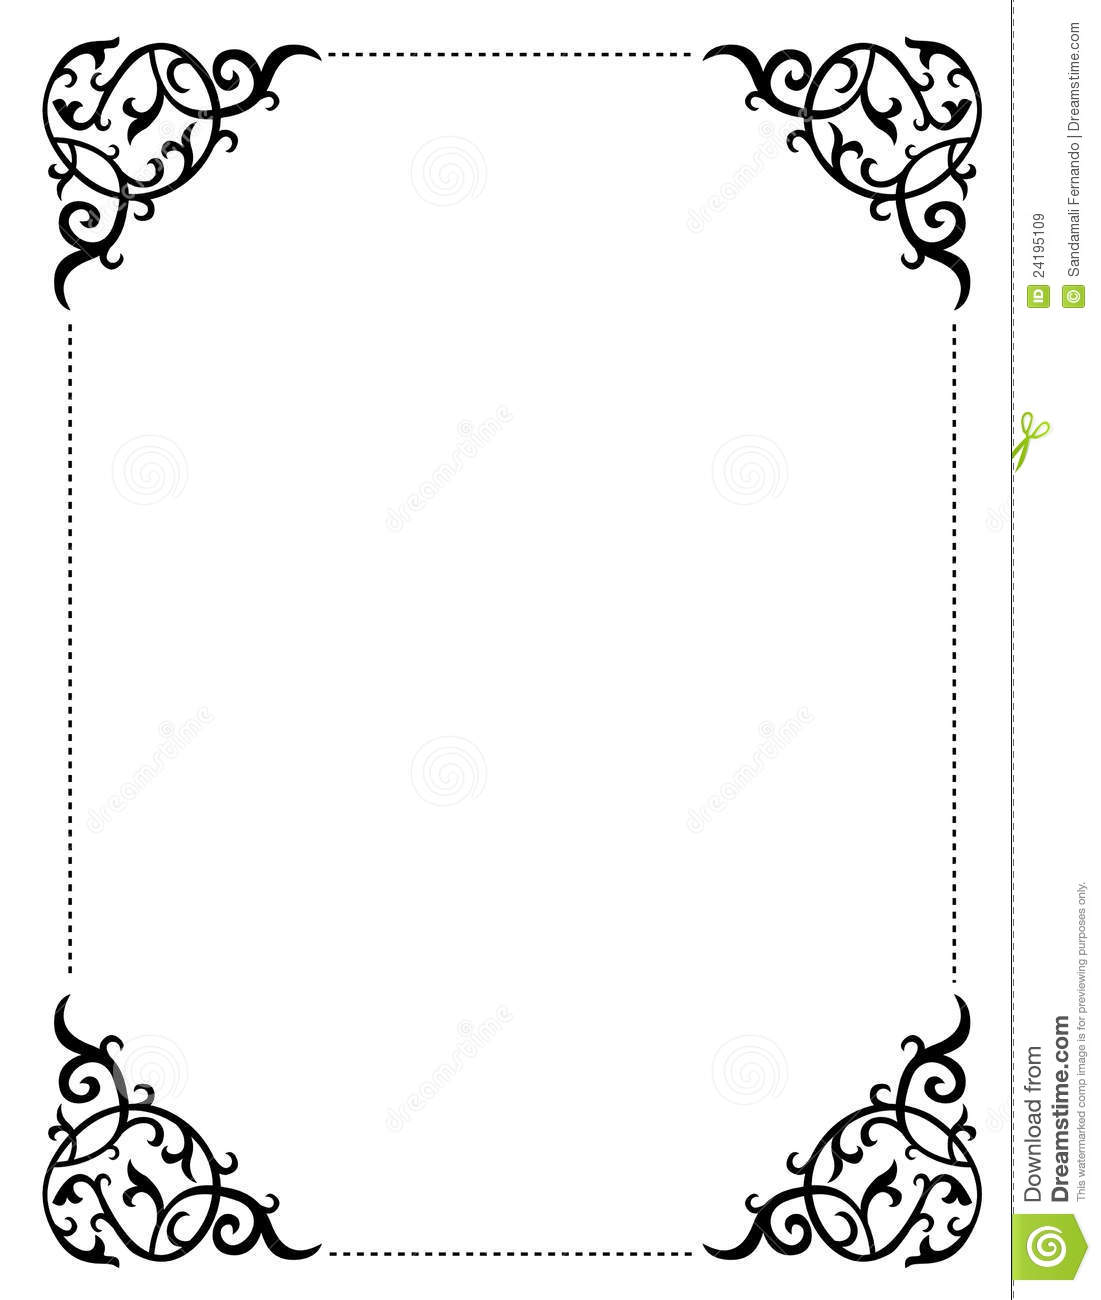 5 Images of Free Printable Borders And Frames